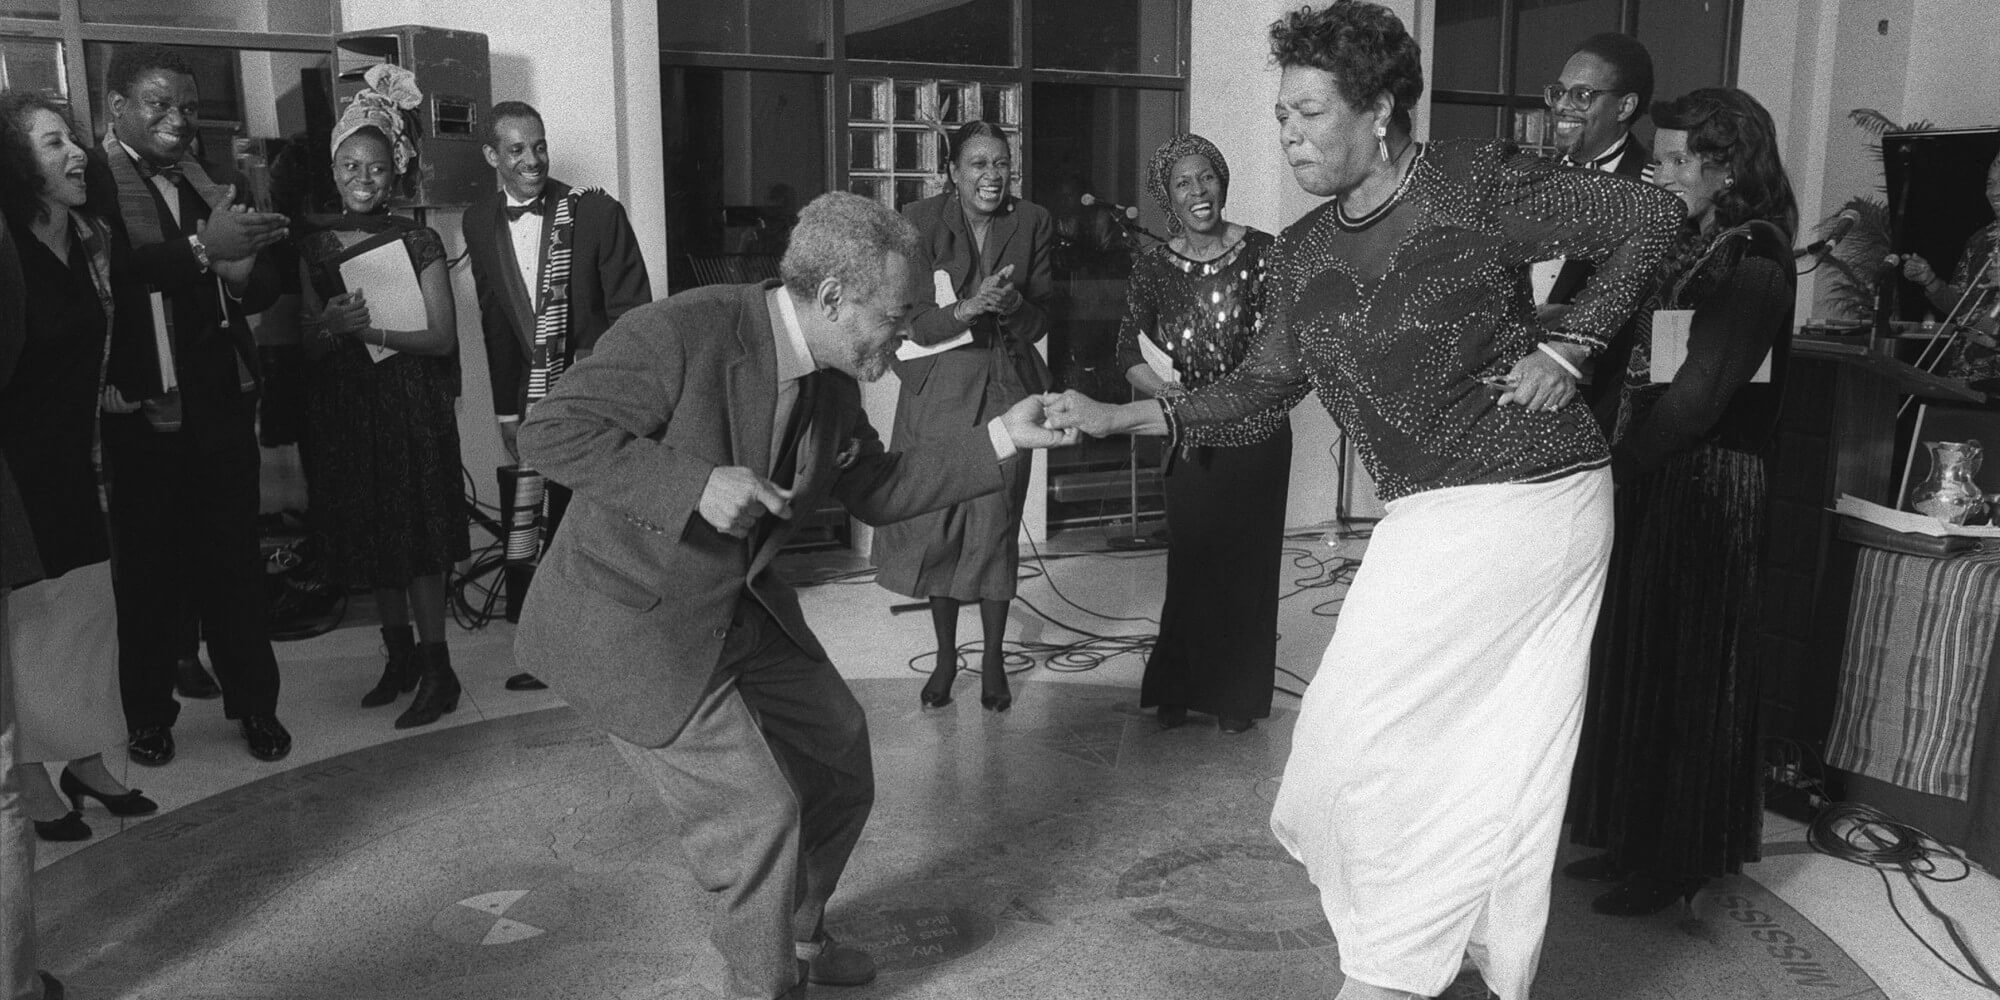 FILE -- Amiri Baraka and Maya Angelou dance on the 89th birthday of the poet Langston Hughes at the The Schomburg Center for Research in Black Culture, where Hughes' ashes were buried beneath the floor, in New York, Feb. 22, 1991. Baraka, a poet and playwright of pulsating rage, whose long illumination of the black experience in America was called incandescent in some quarters and incendiary in others, died Jan. 9, 2014. He was 79. (Chester Higgins, Jr./The New York Times)